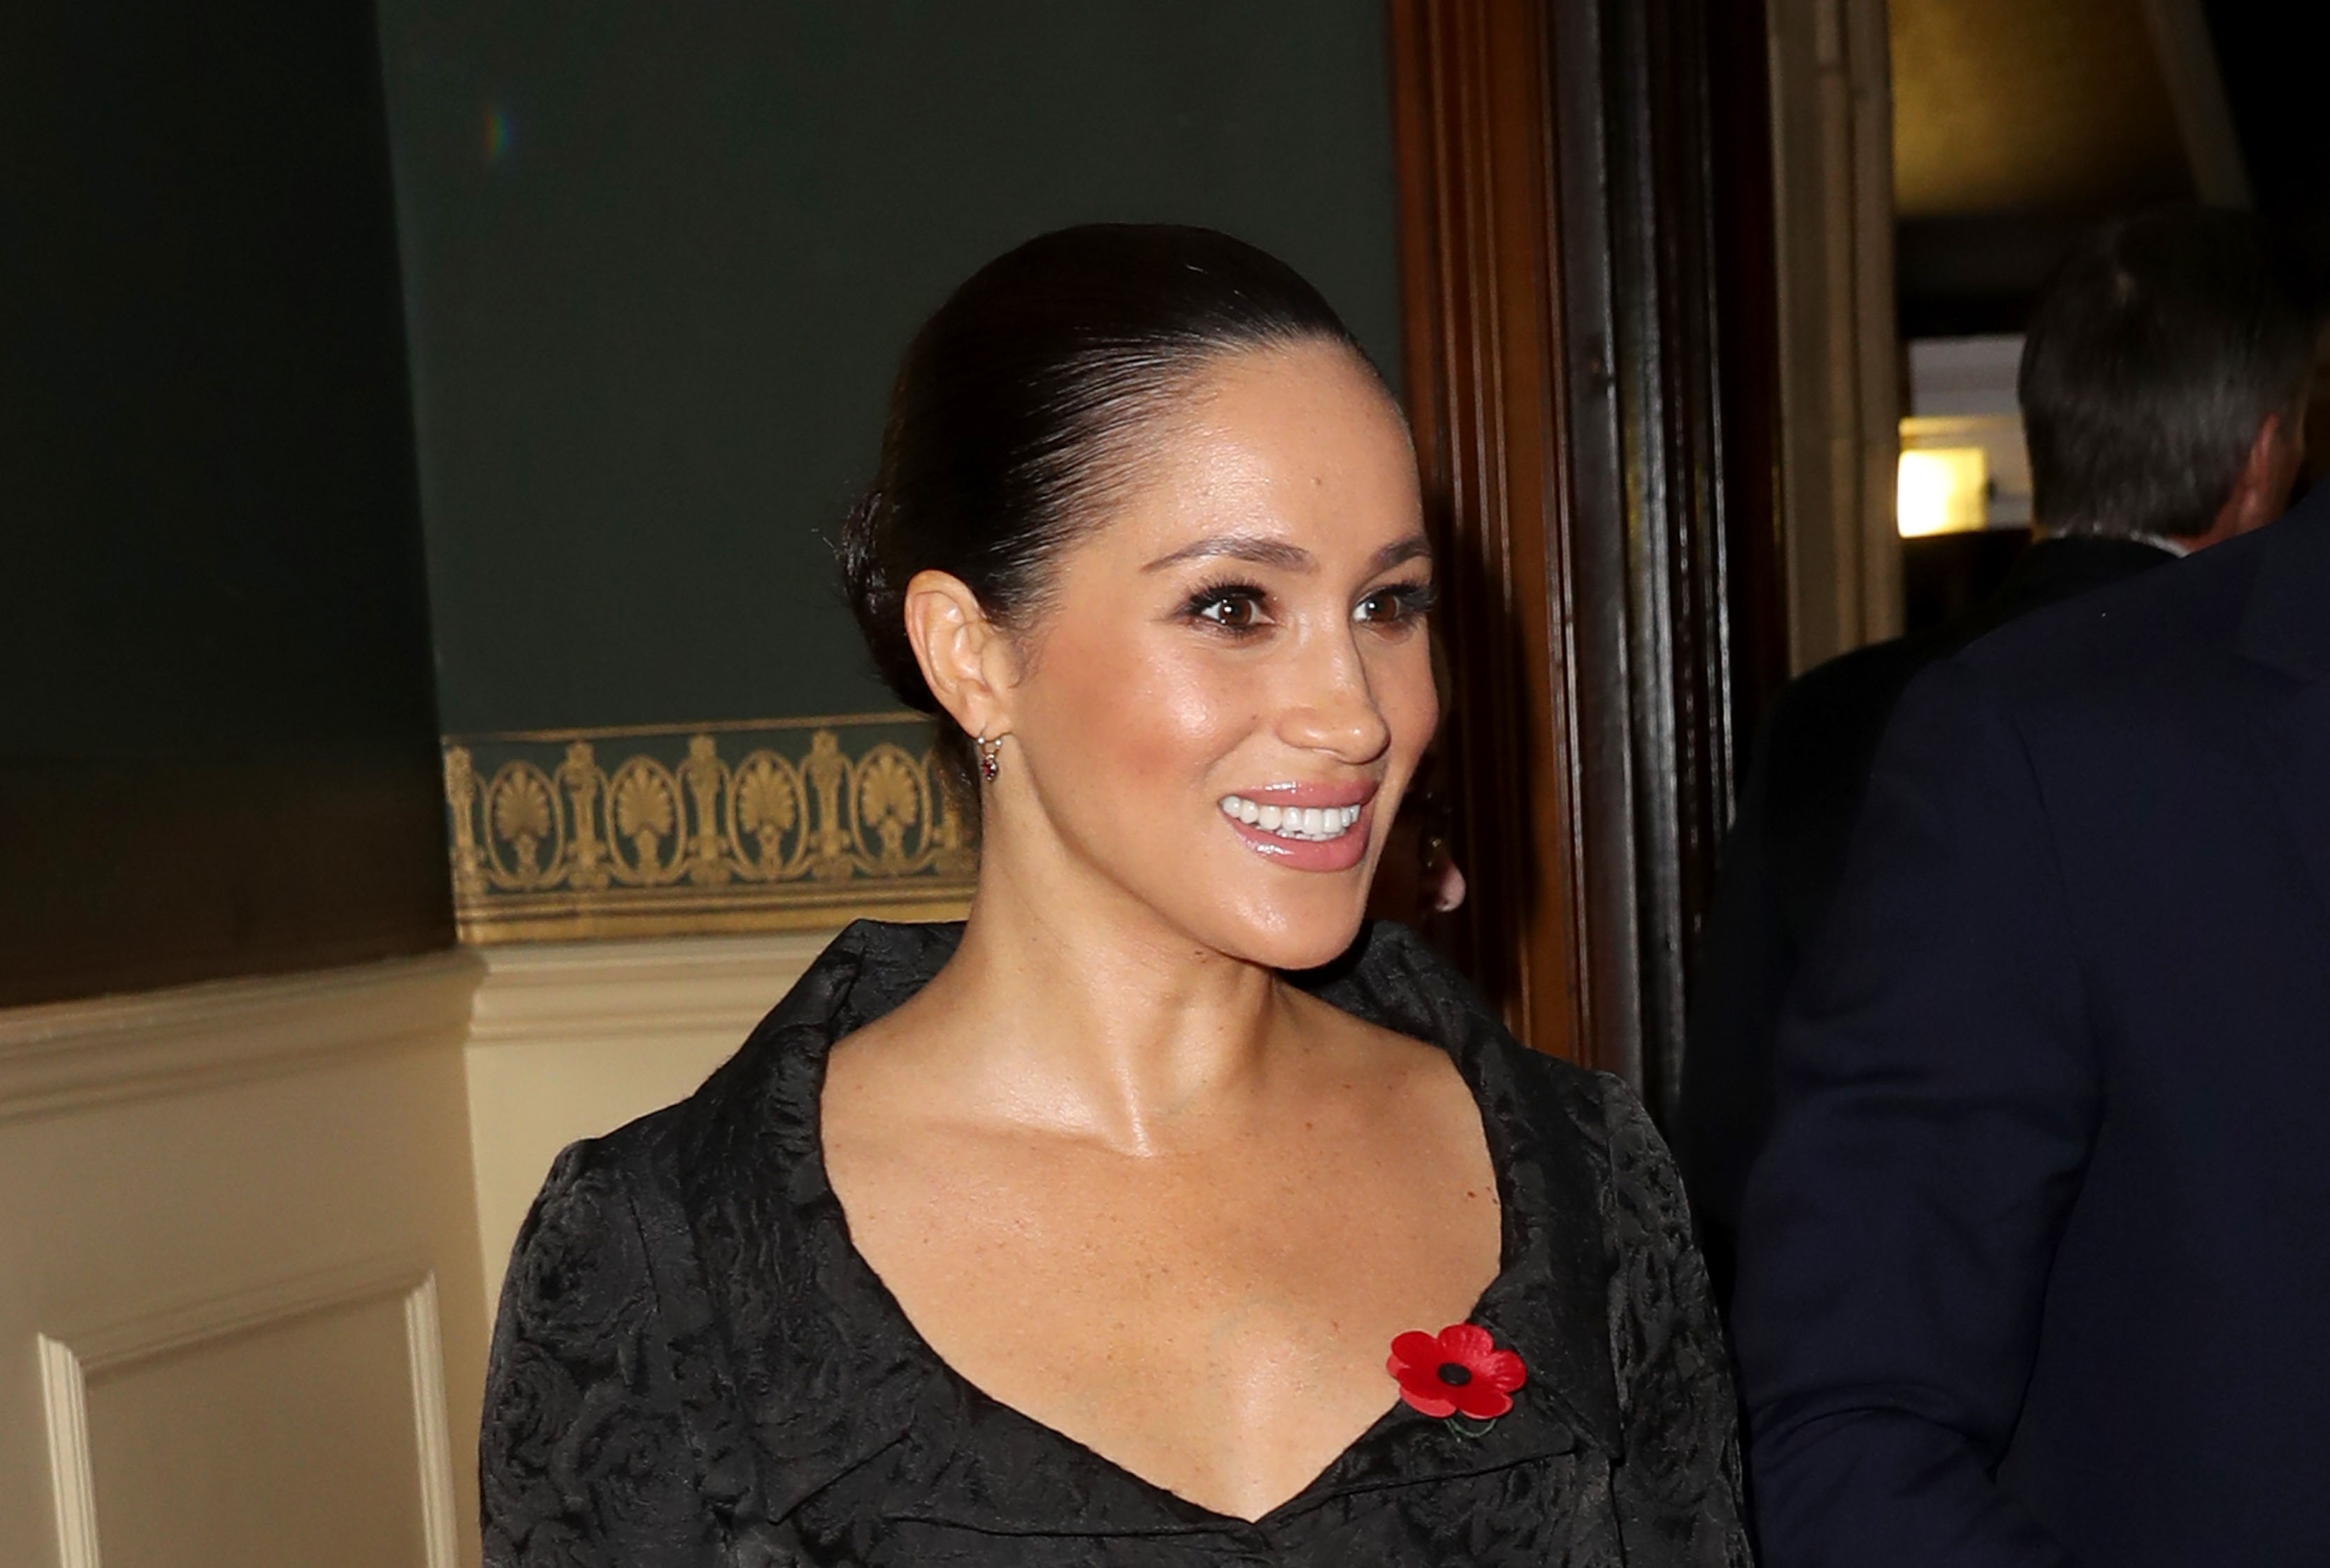 Royal fans think there's another telltale sign Meghan Markle is pregnant